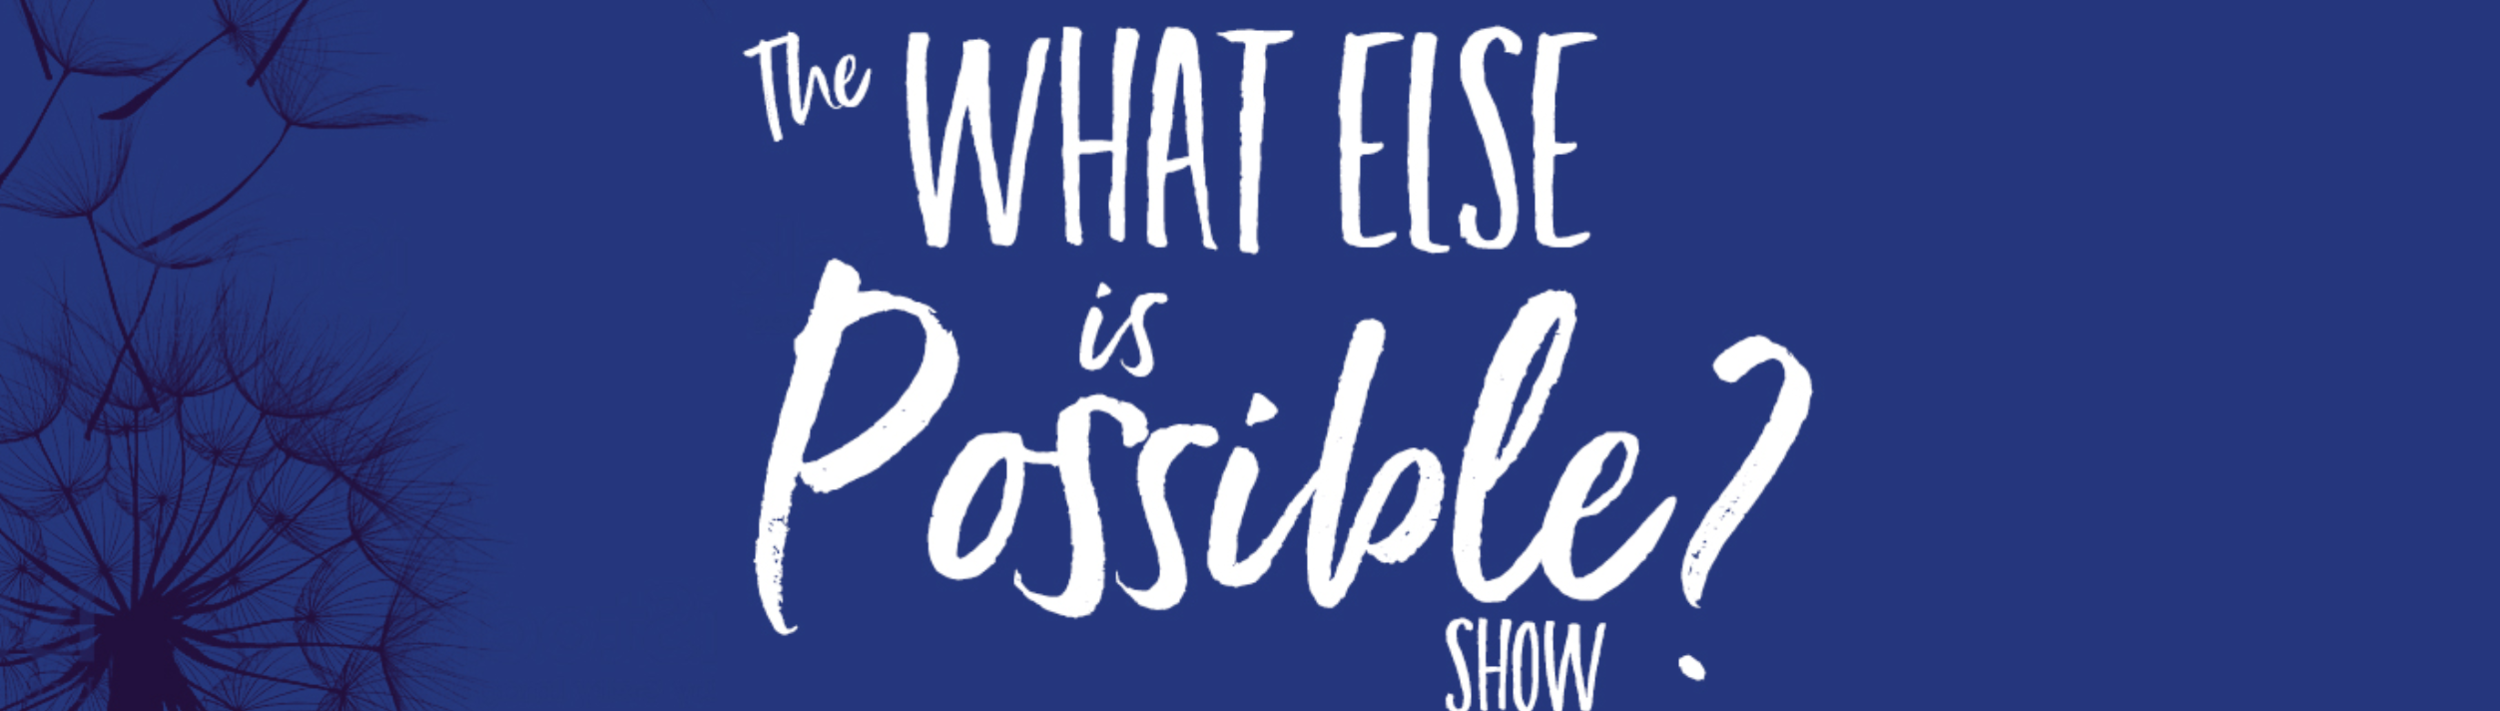 Check out Emily as a podcast host on 'The What Else is Possible Show'! - Find more episodes HERE.